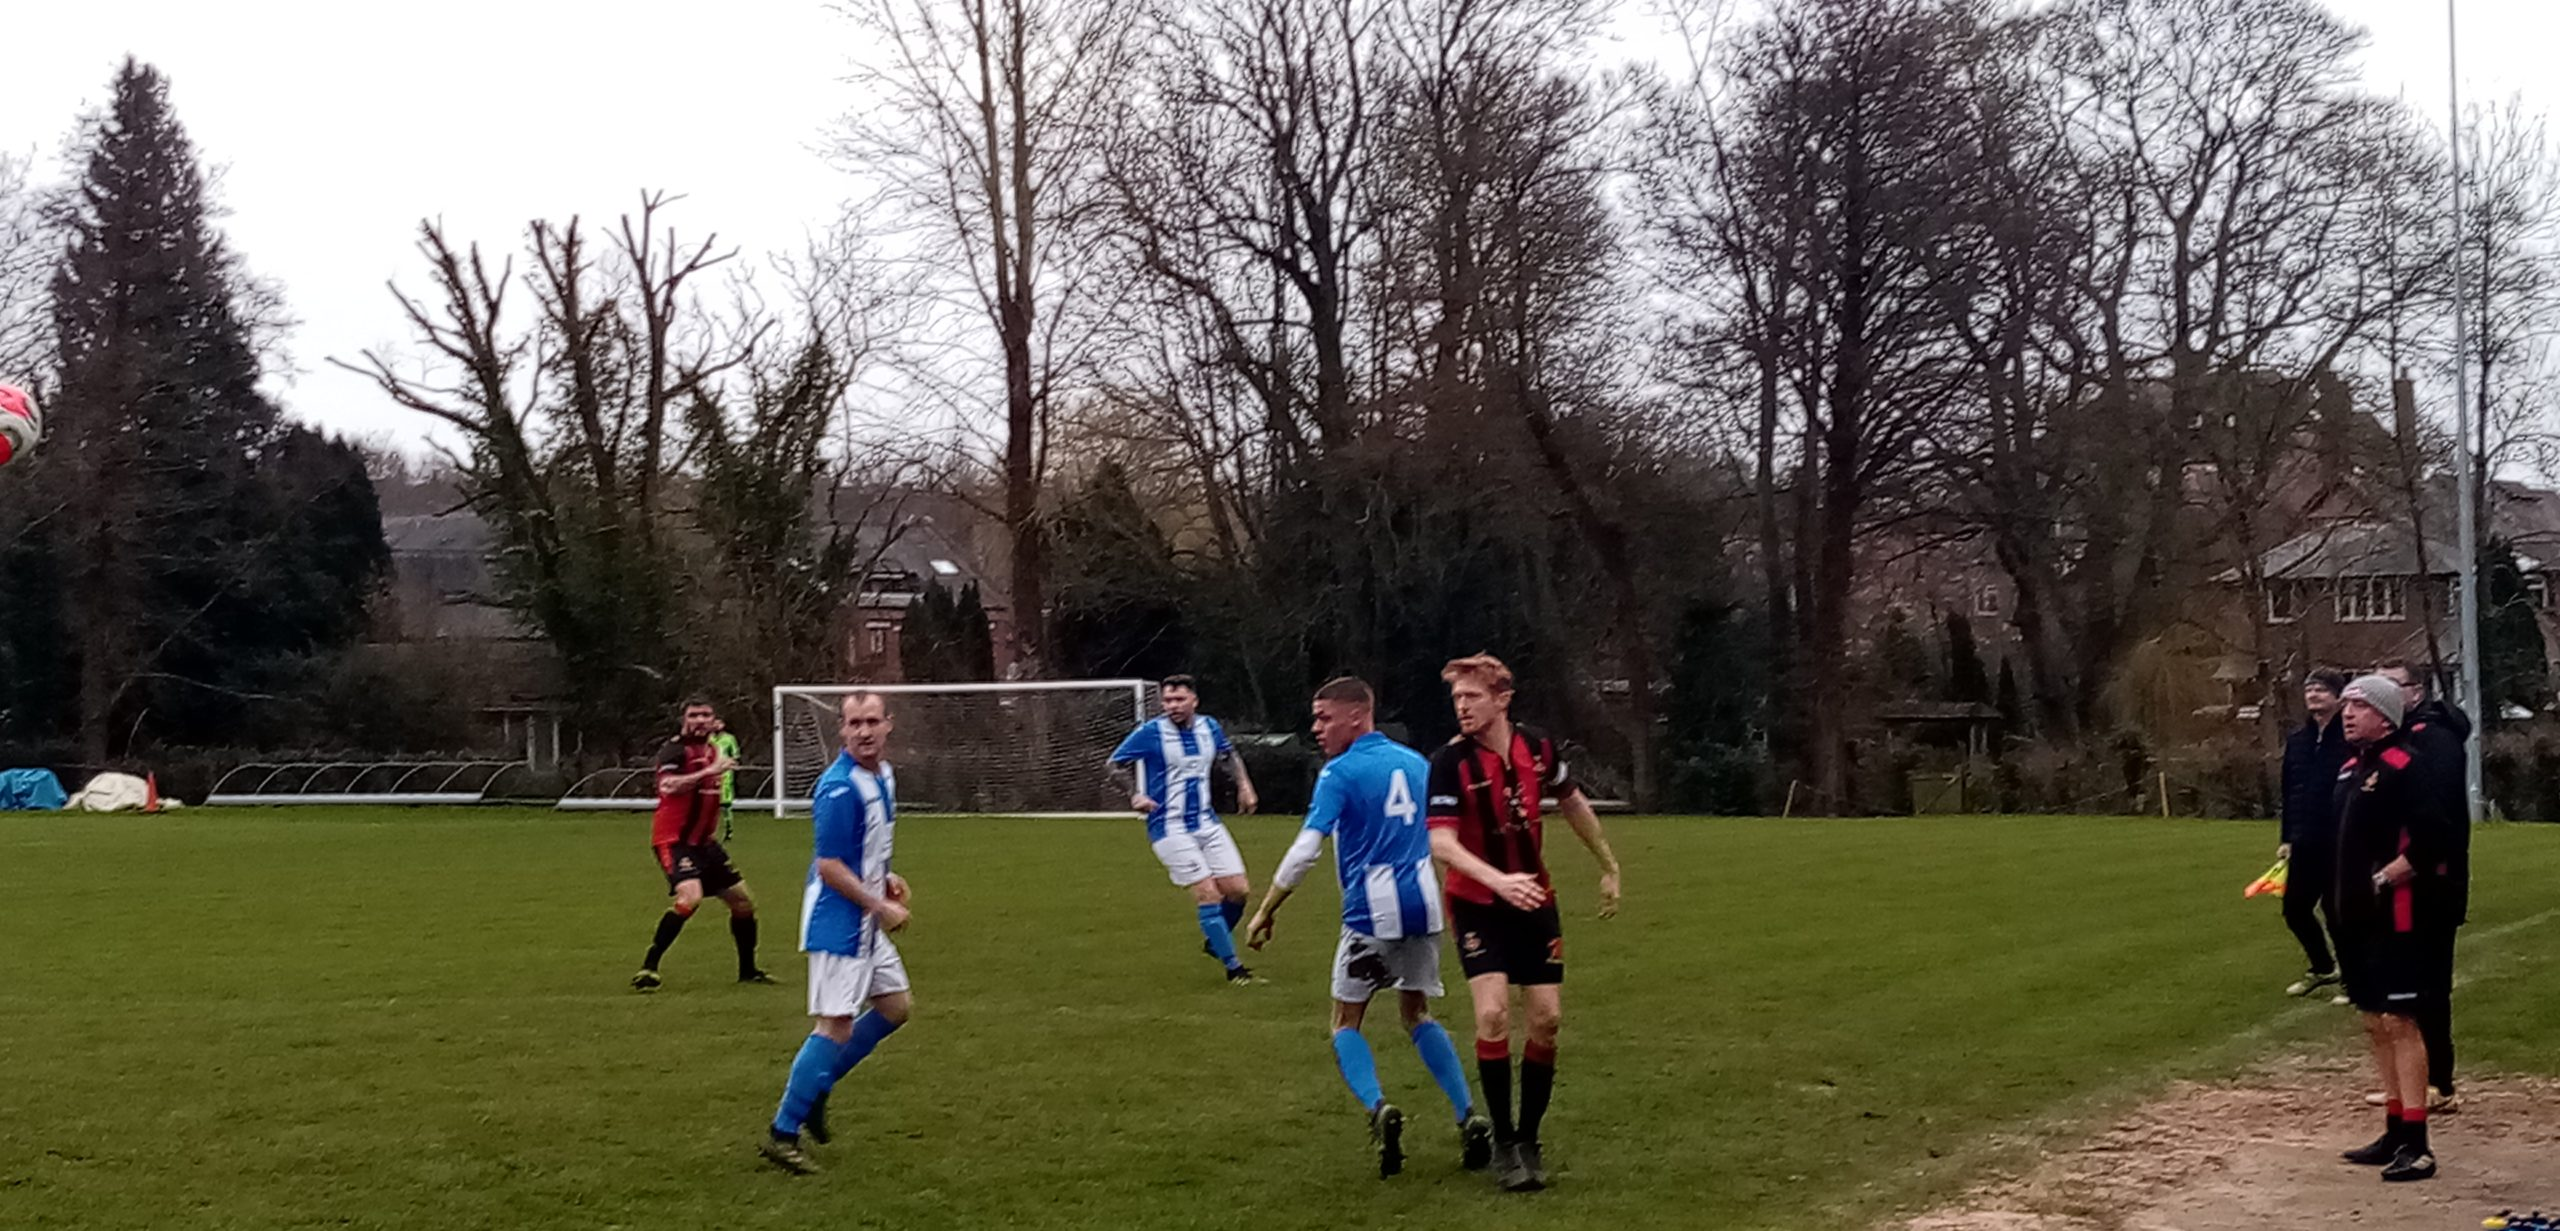 Overton United 2-2 Fleetlands